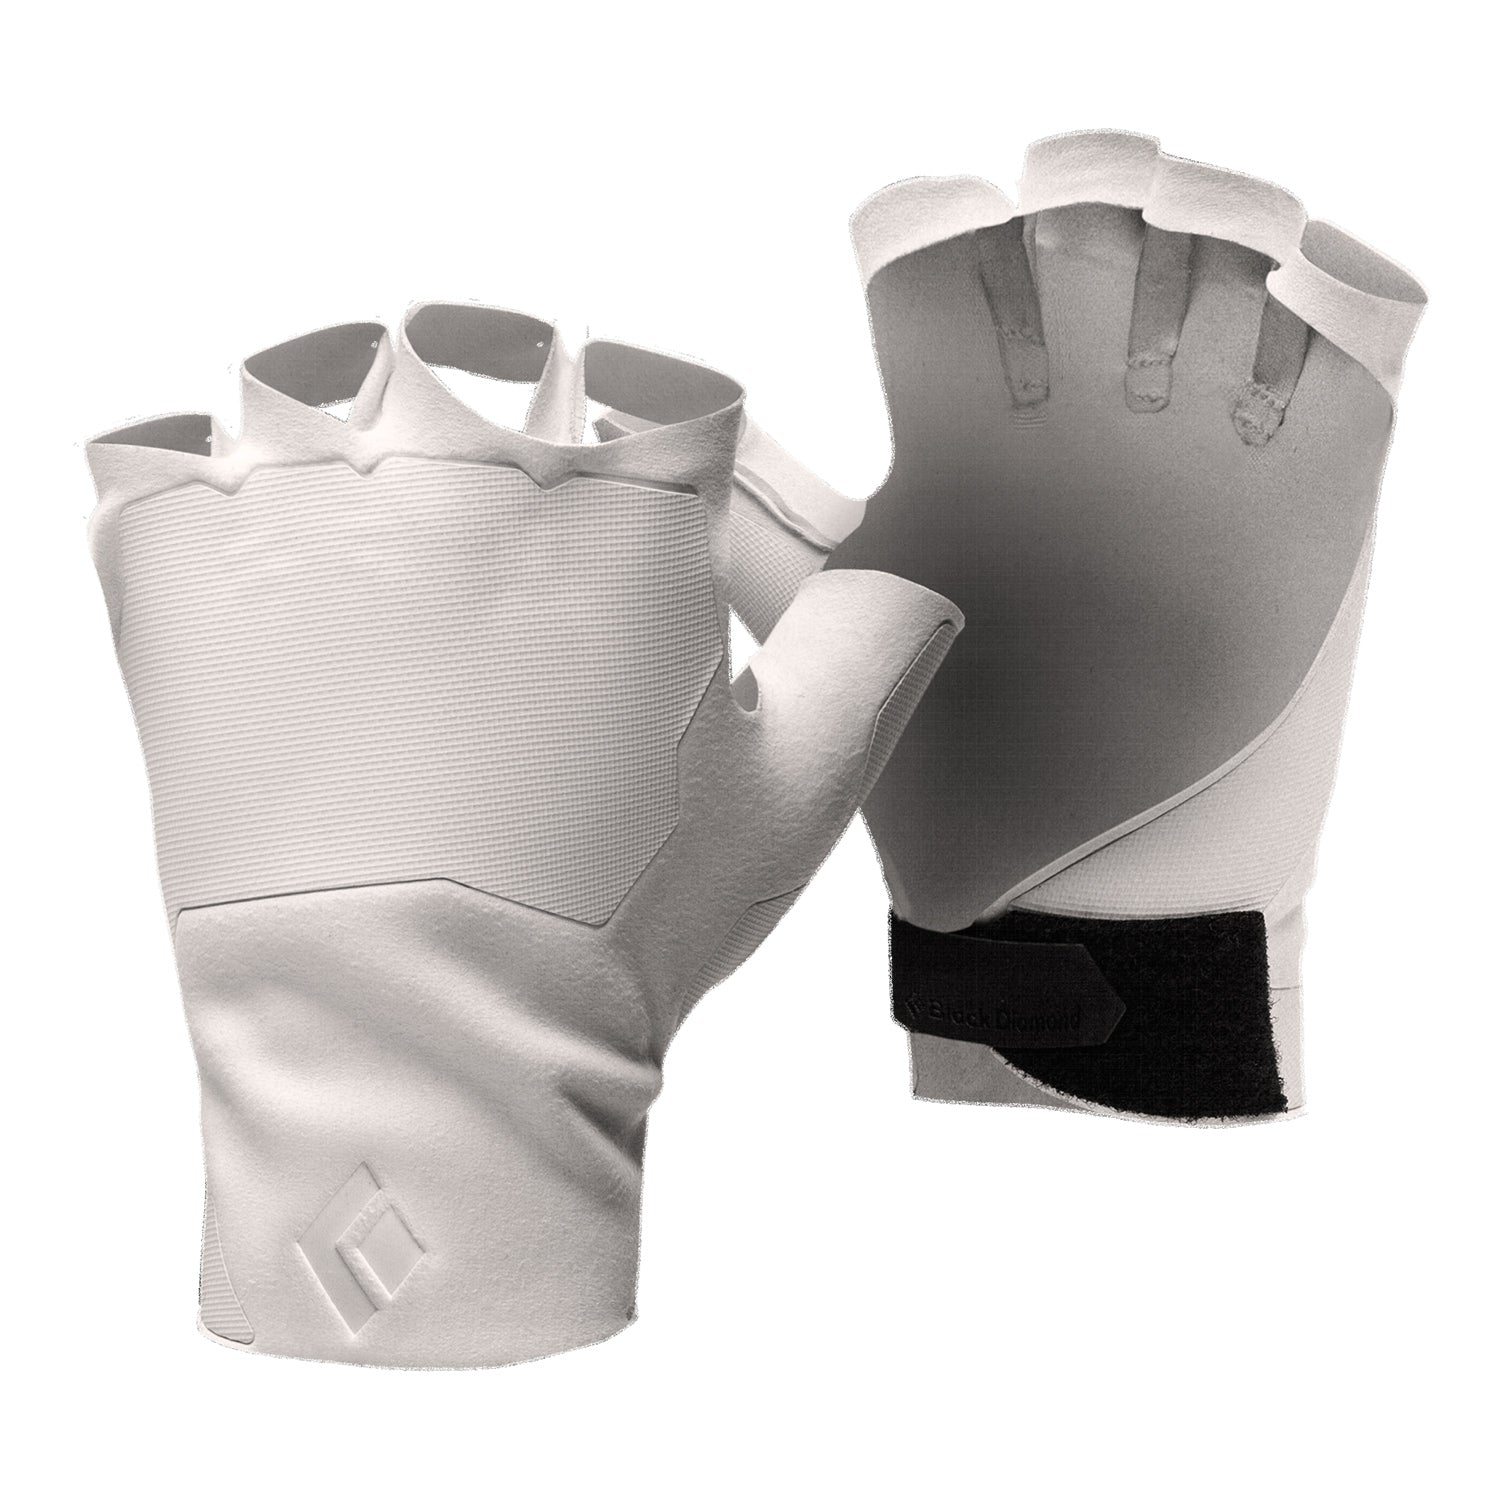 black diamond crack climbing gloves in white